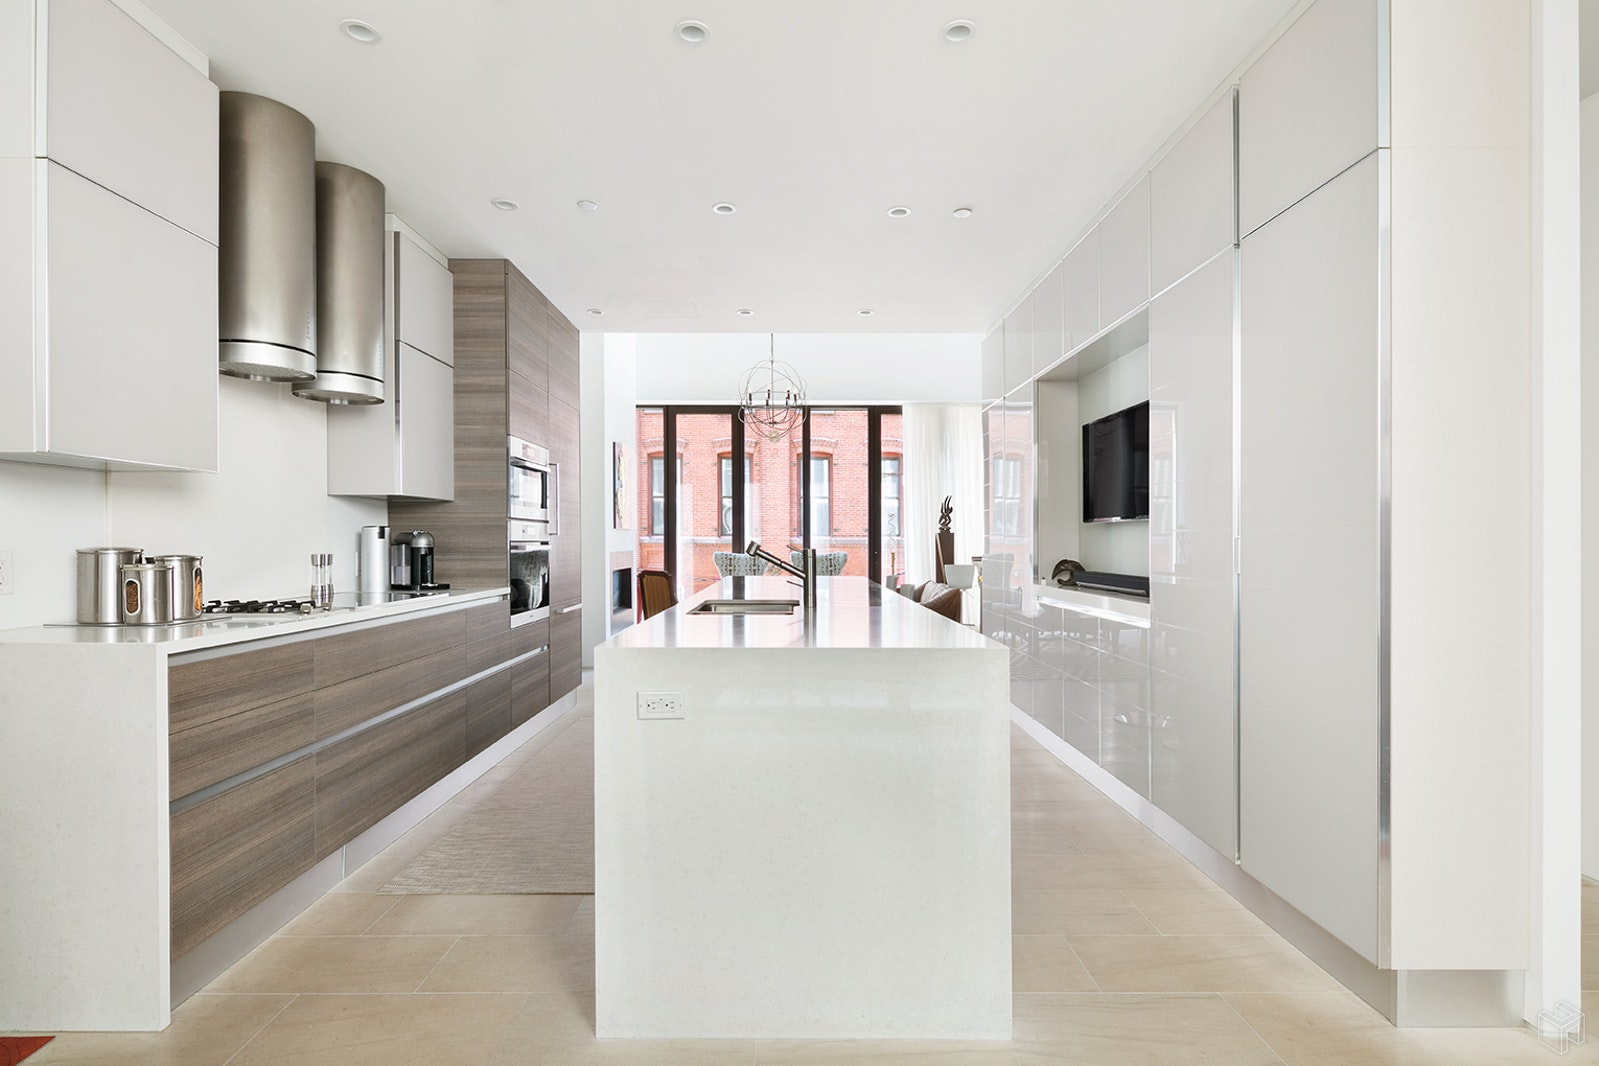 169 Water Street, Brooklyn, Brooklyn, NY, 11201, $4,995,000, Property For Sale, Halstead Real Estate, Photo 5